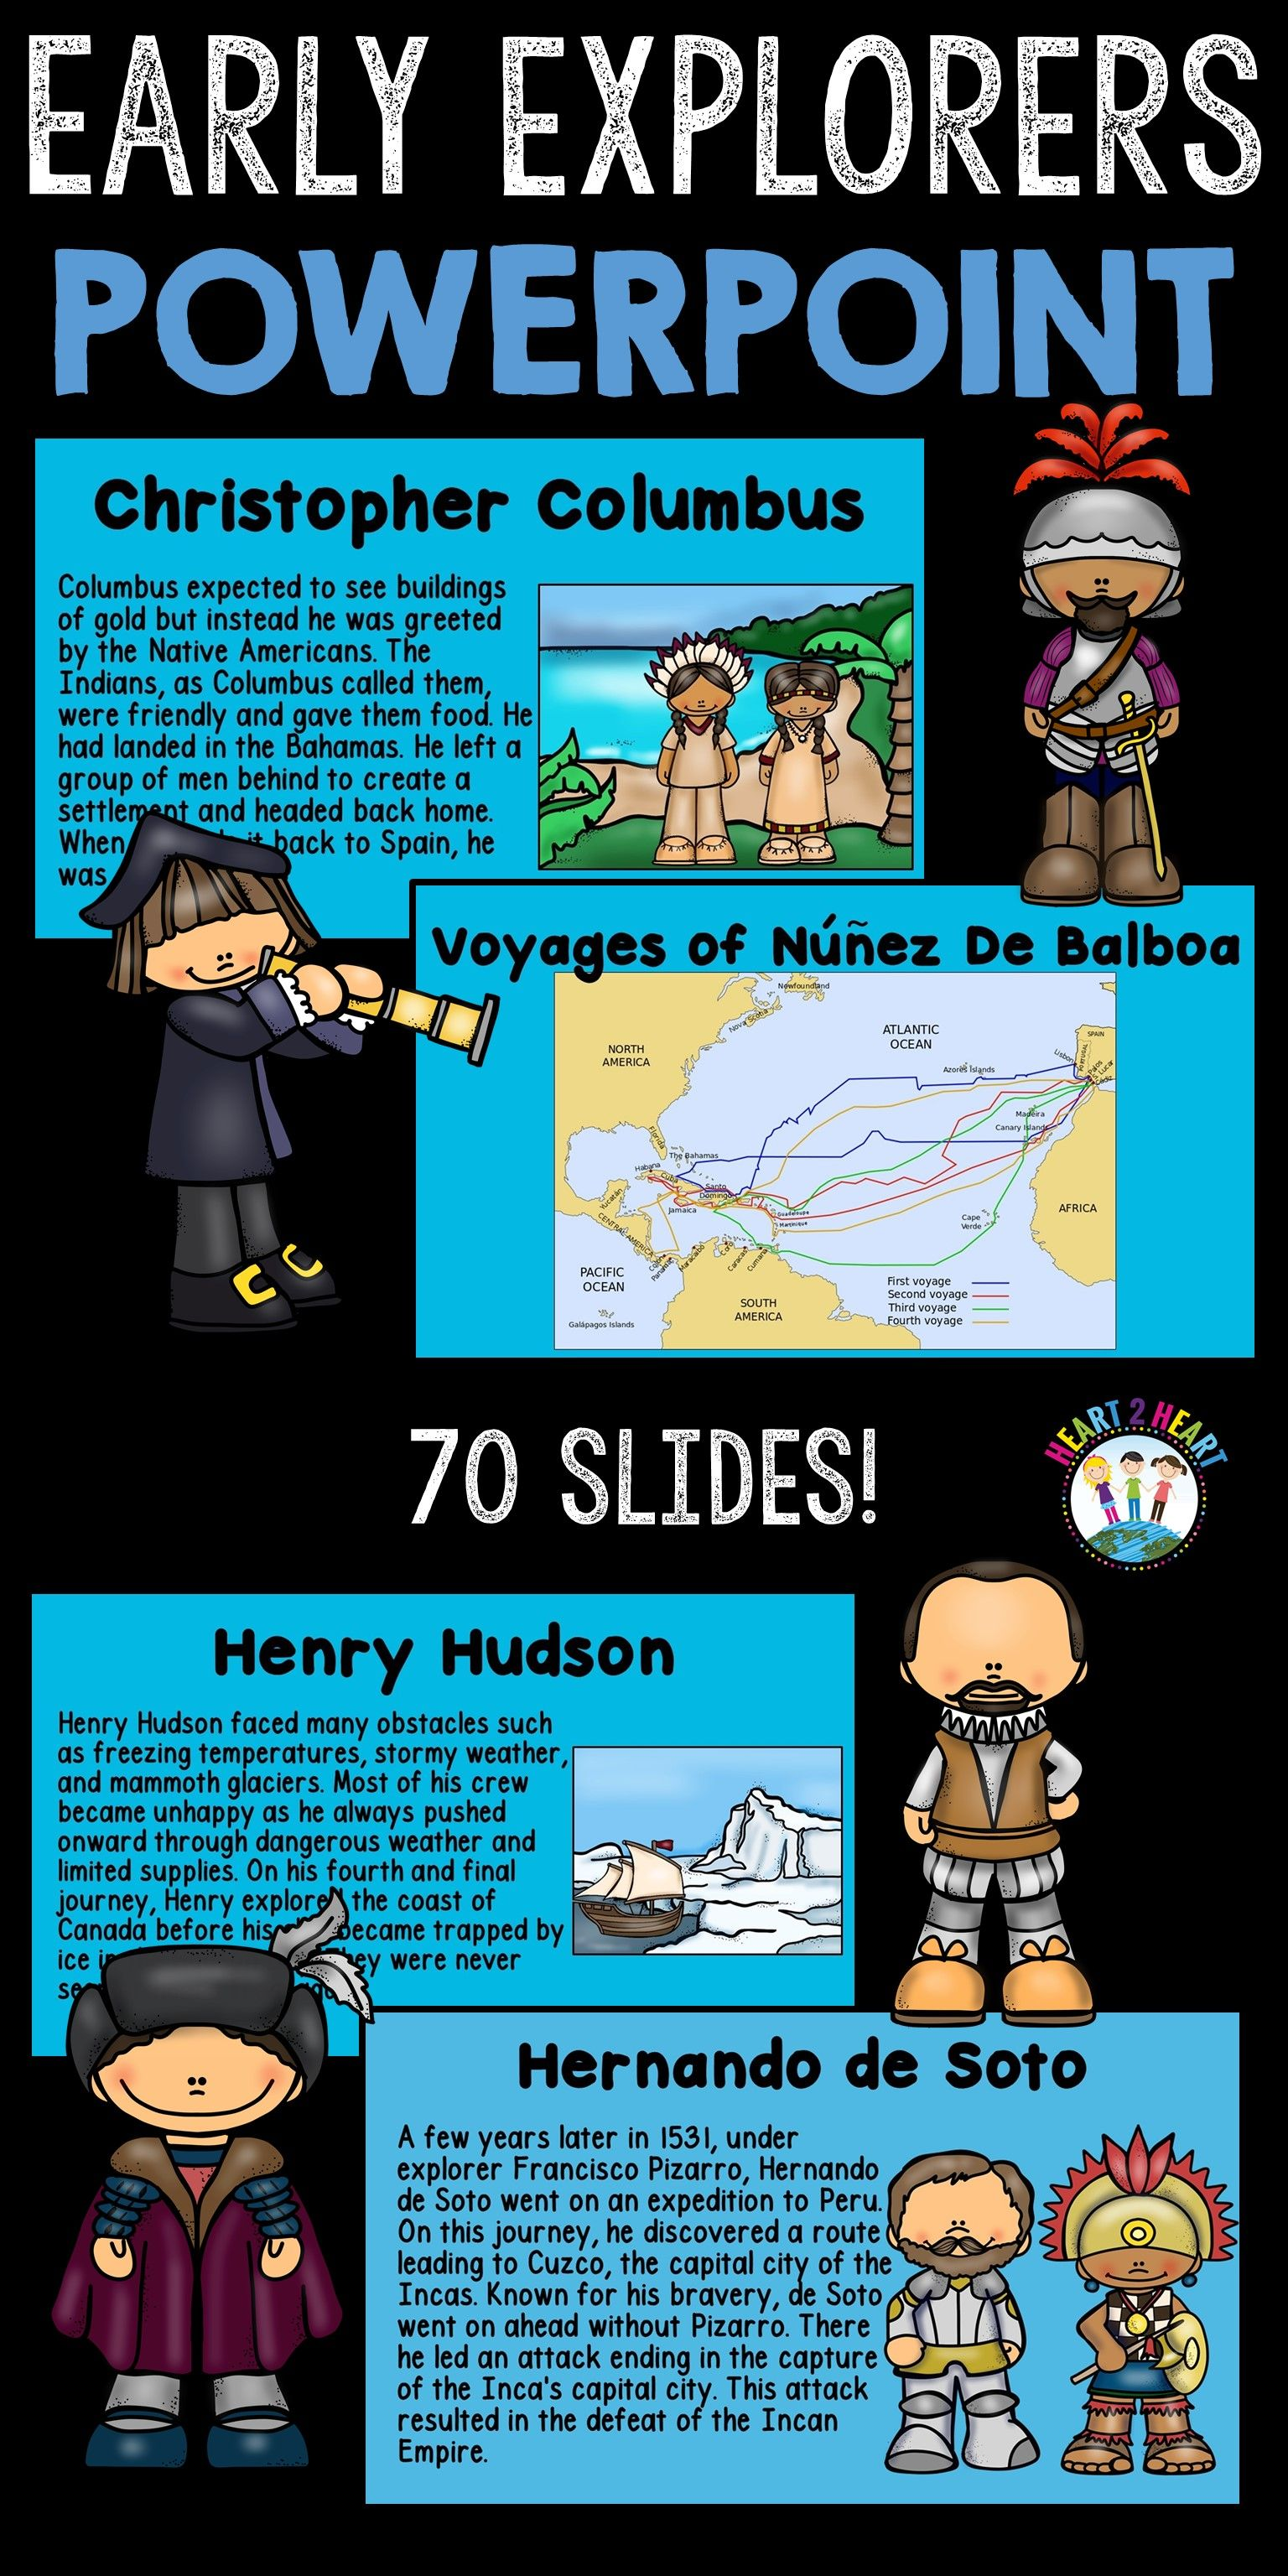 Early European Explorers Powerpoint: The Age of ...